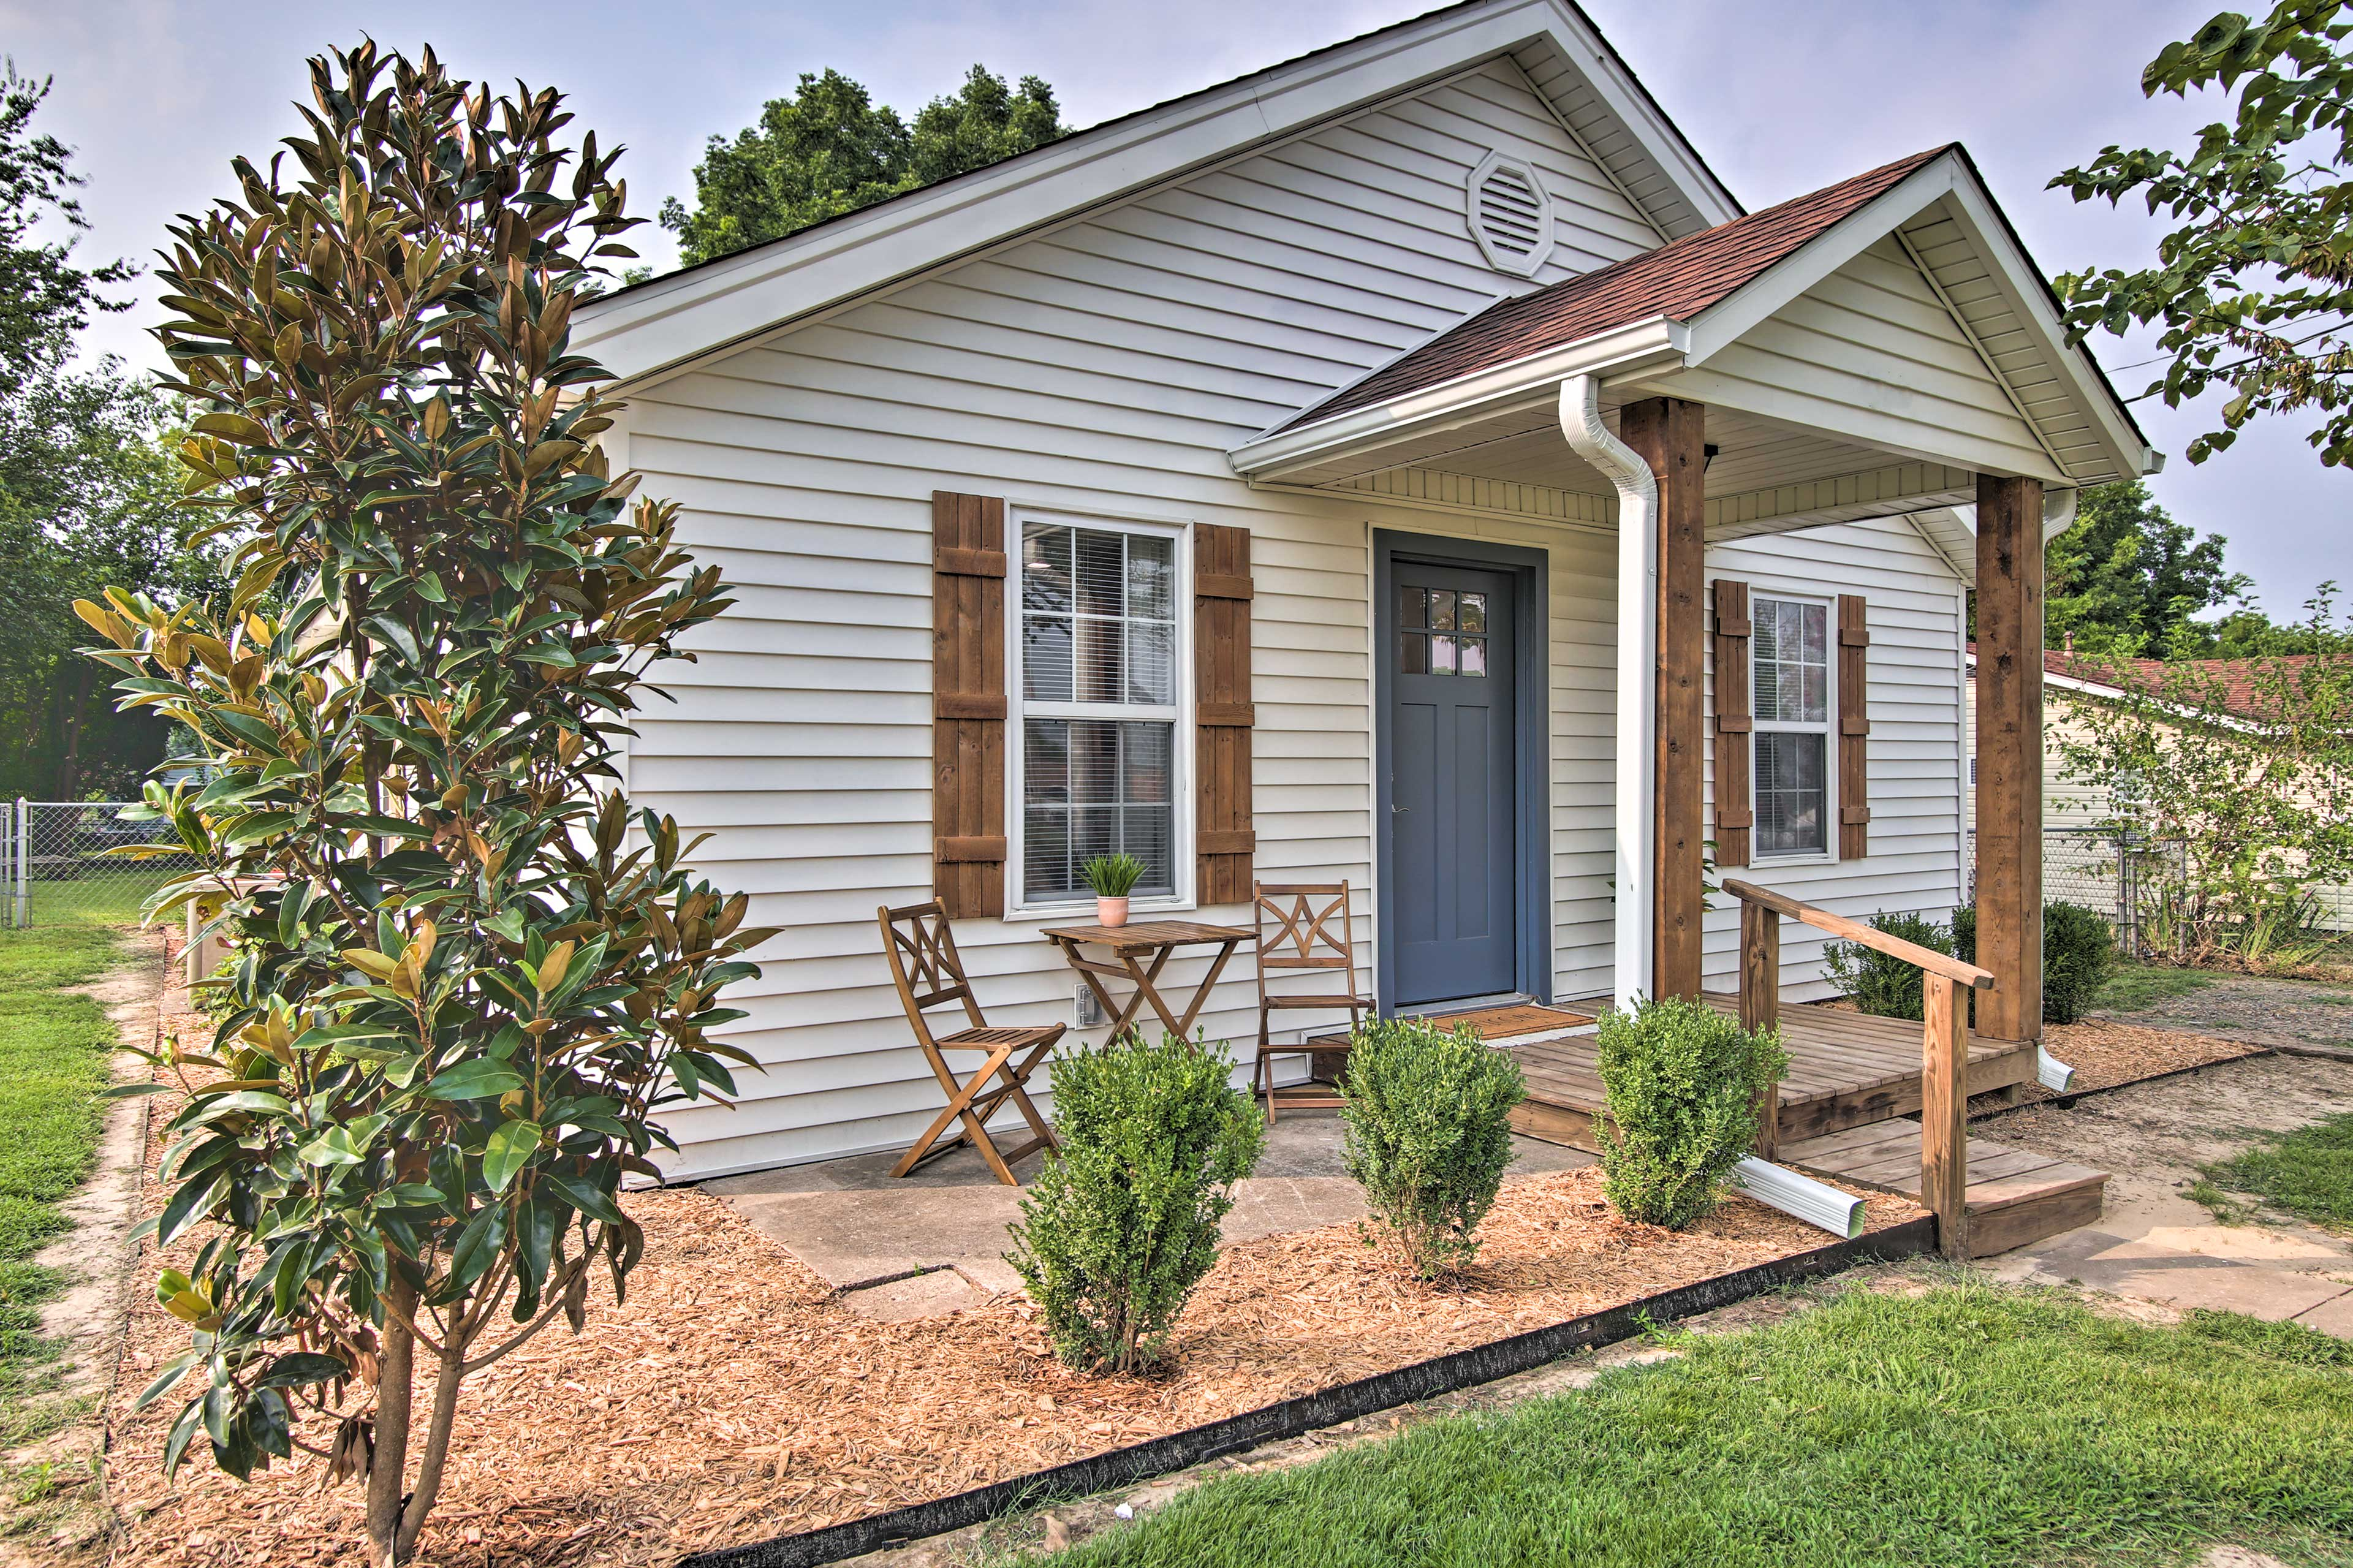 Fort Gibson Vacation Rental   3BR   2BA   950 Sq Ft   2 Small Steps Required